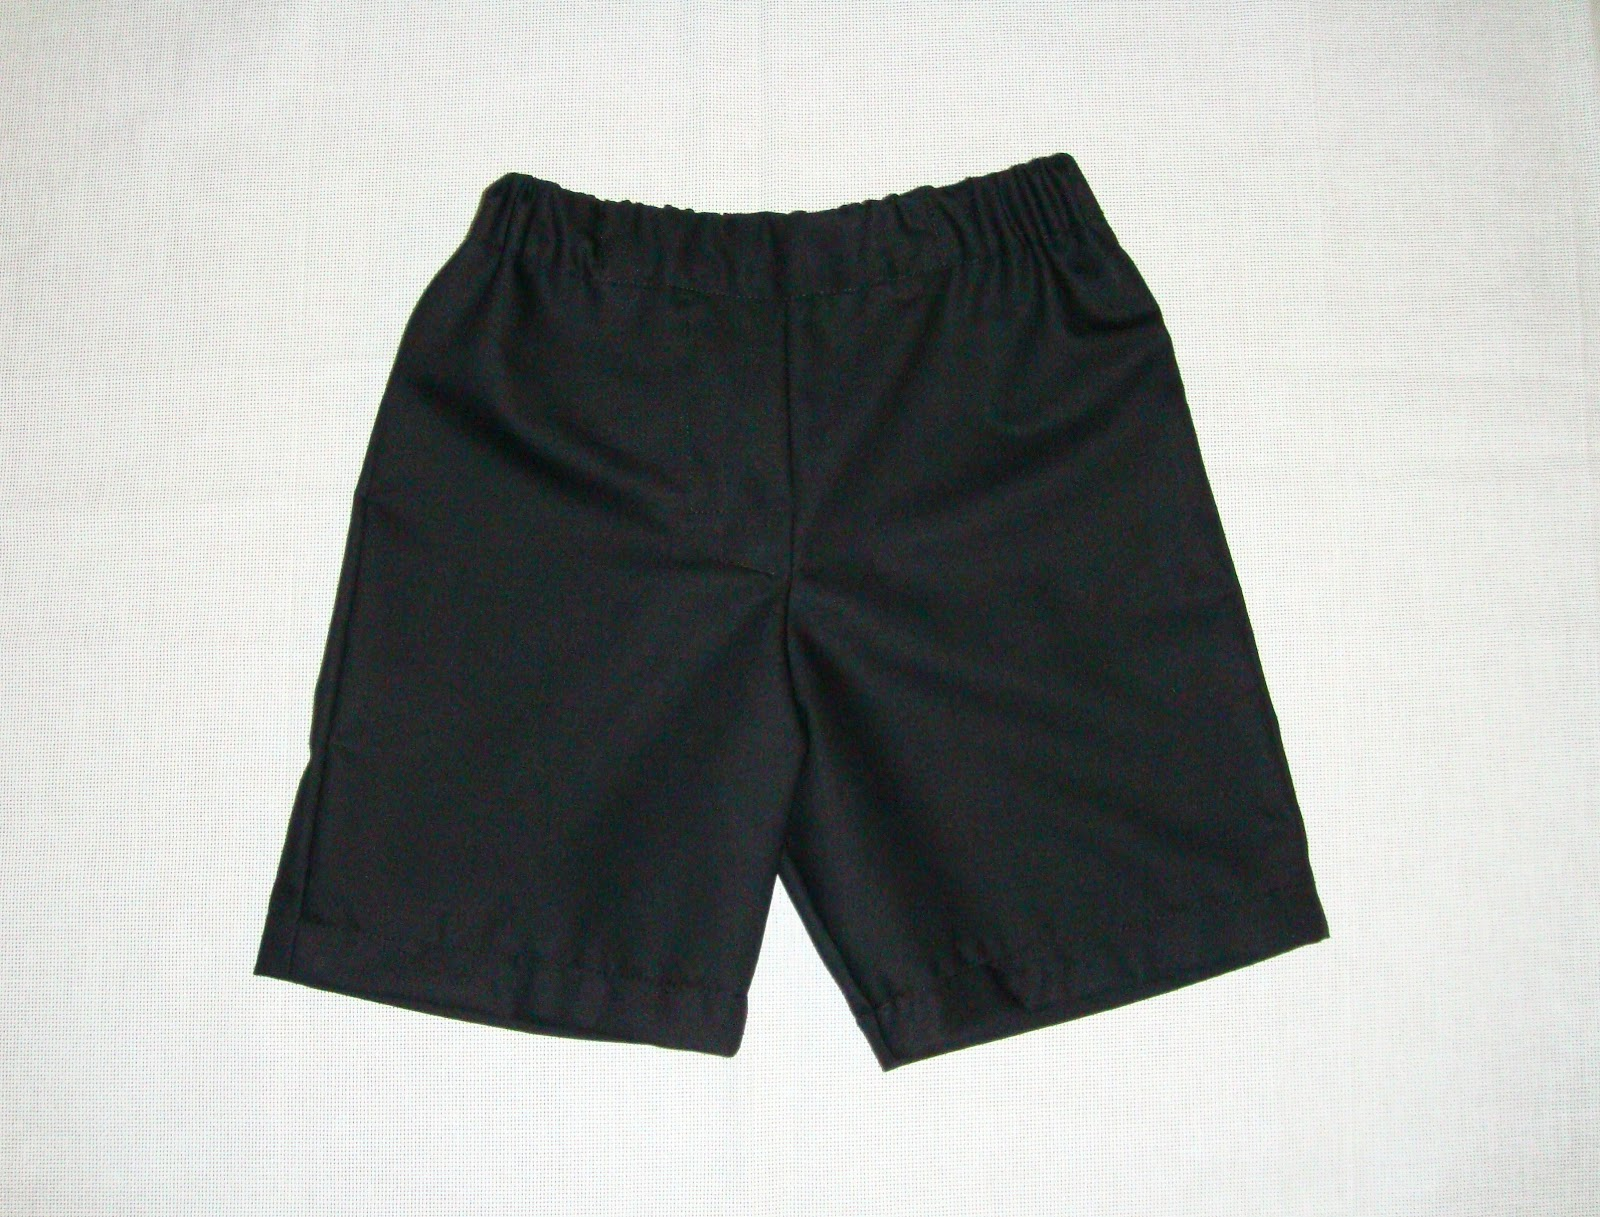 http://velvetribbonsew.blogspot.com/2012/10/black-shorts-for-eduardo.html